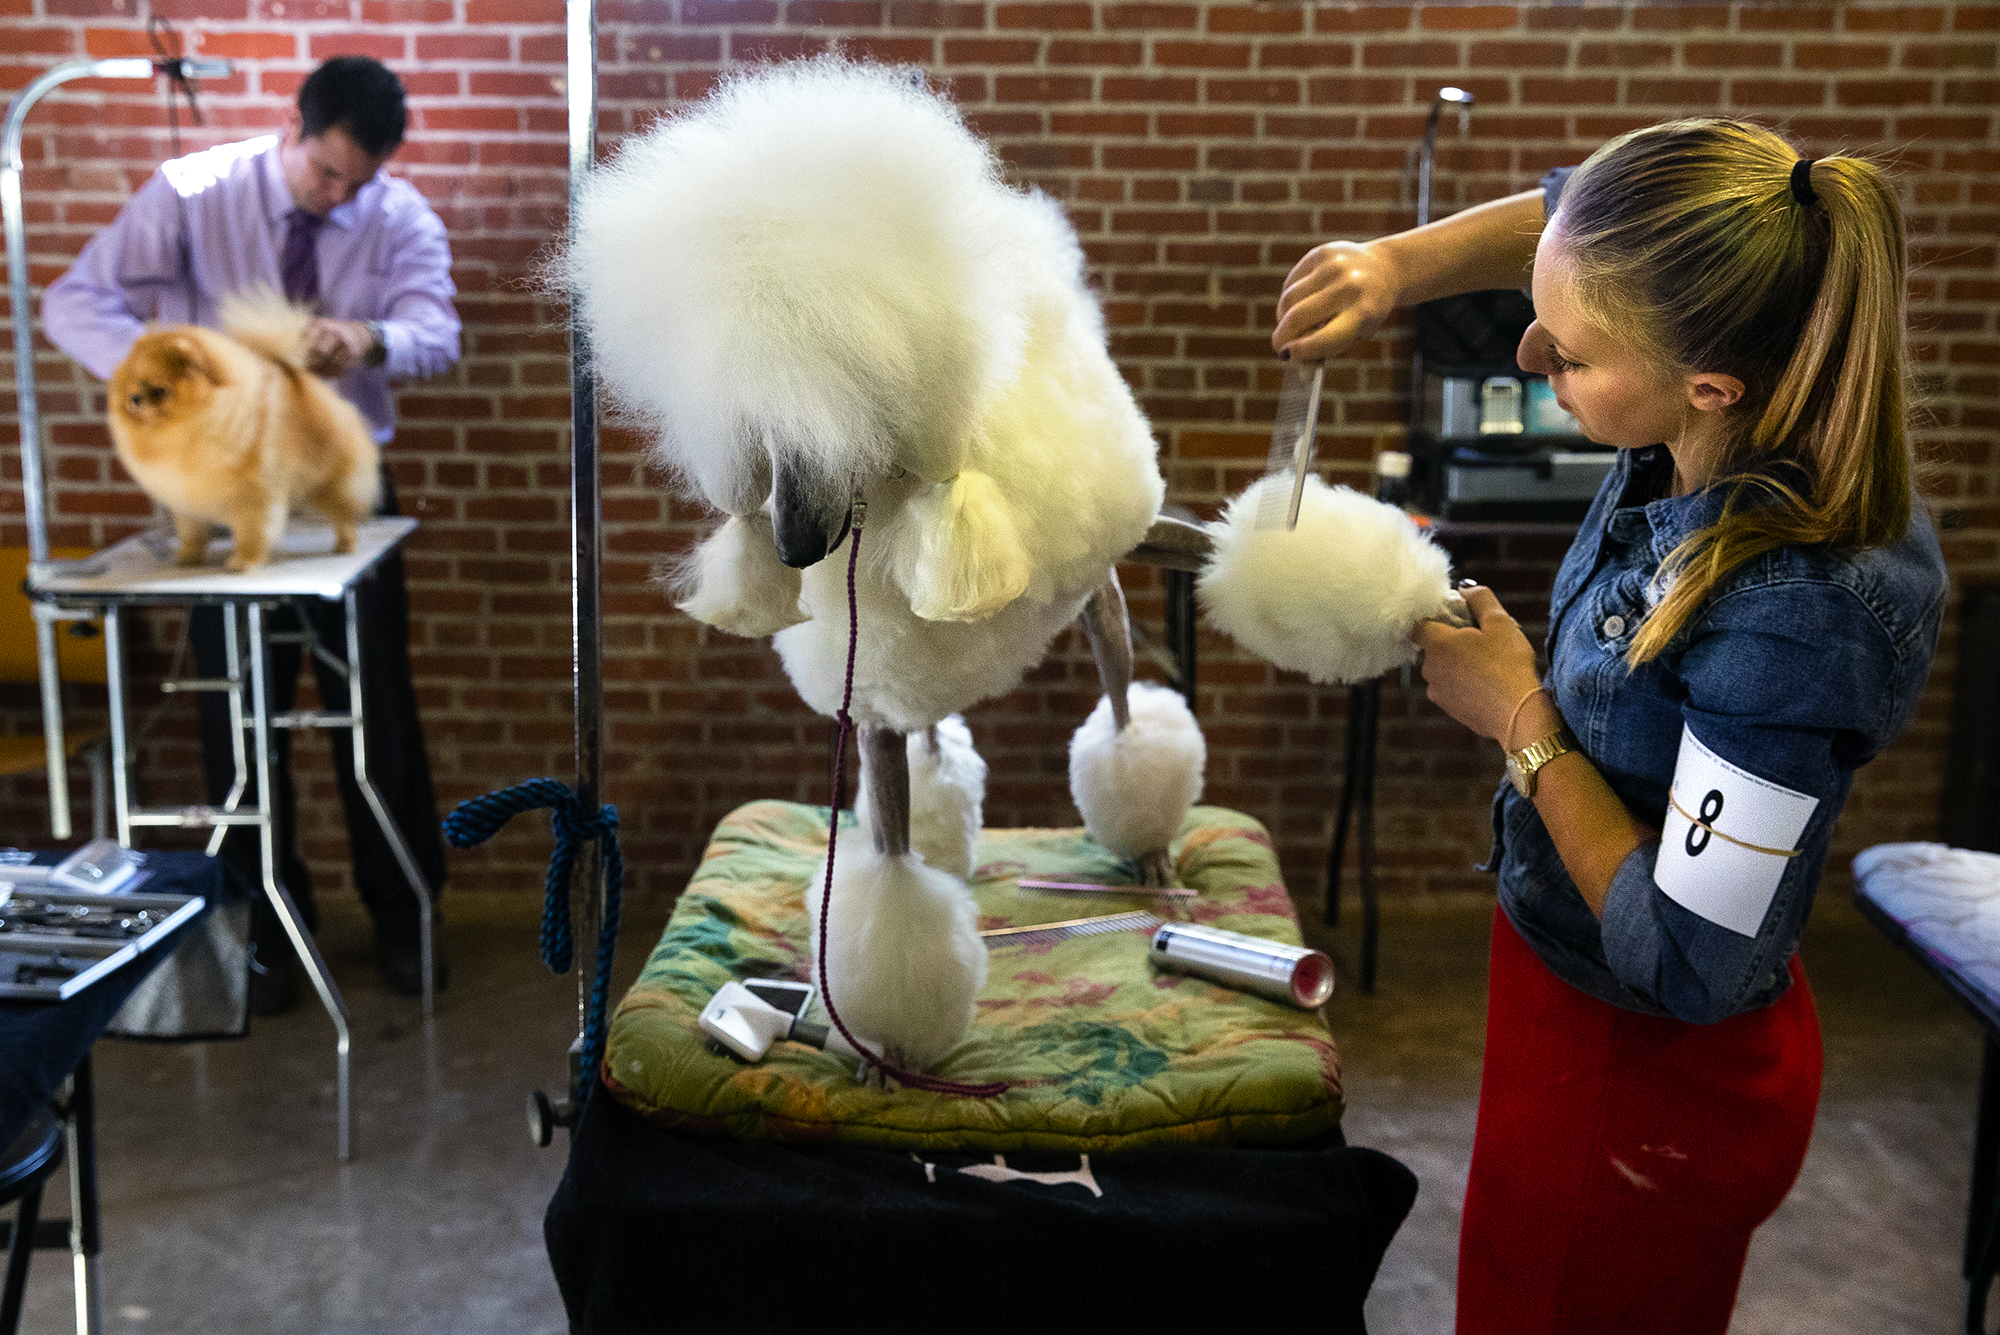 Chanel Lefever prepares a poodle named Pearl for competition at the Prairieland Classic Dog Shows Thursday, Oct. 18, 2018. The shows continue through Sunday at the Exposition Building on the Illinois State Fairgrounds. [Ted Schurter/The State Journal-Register]